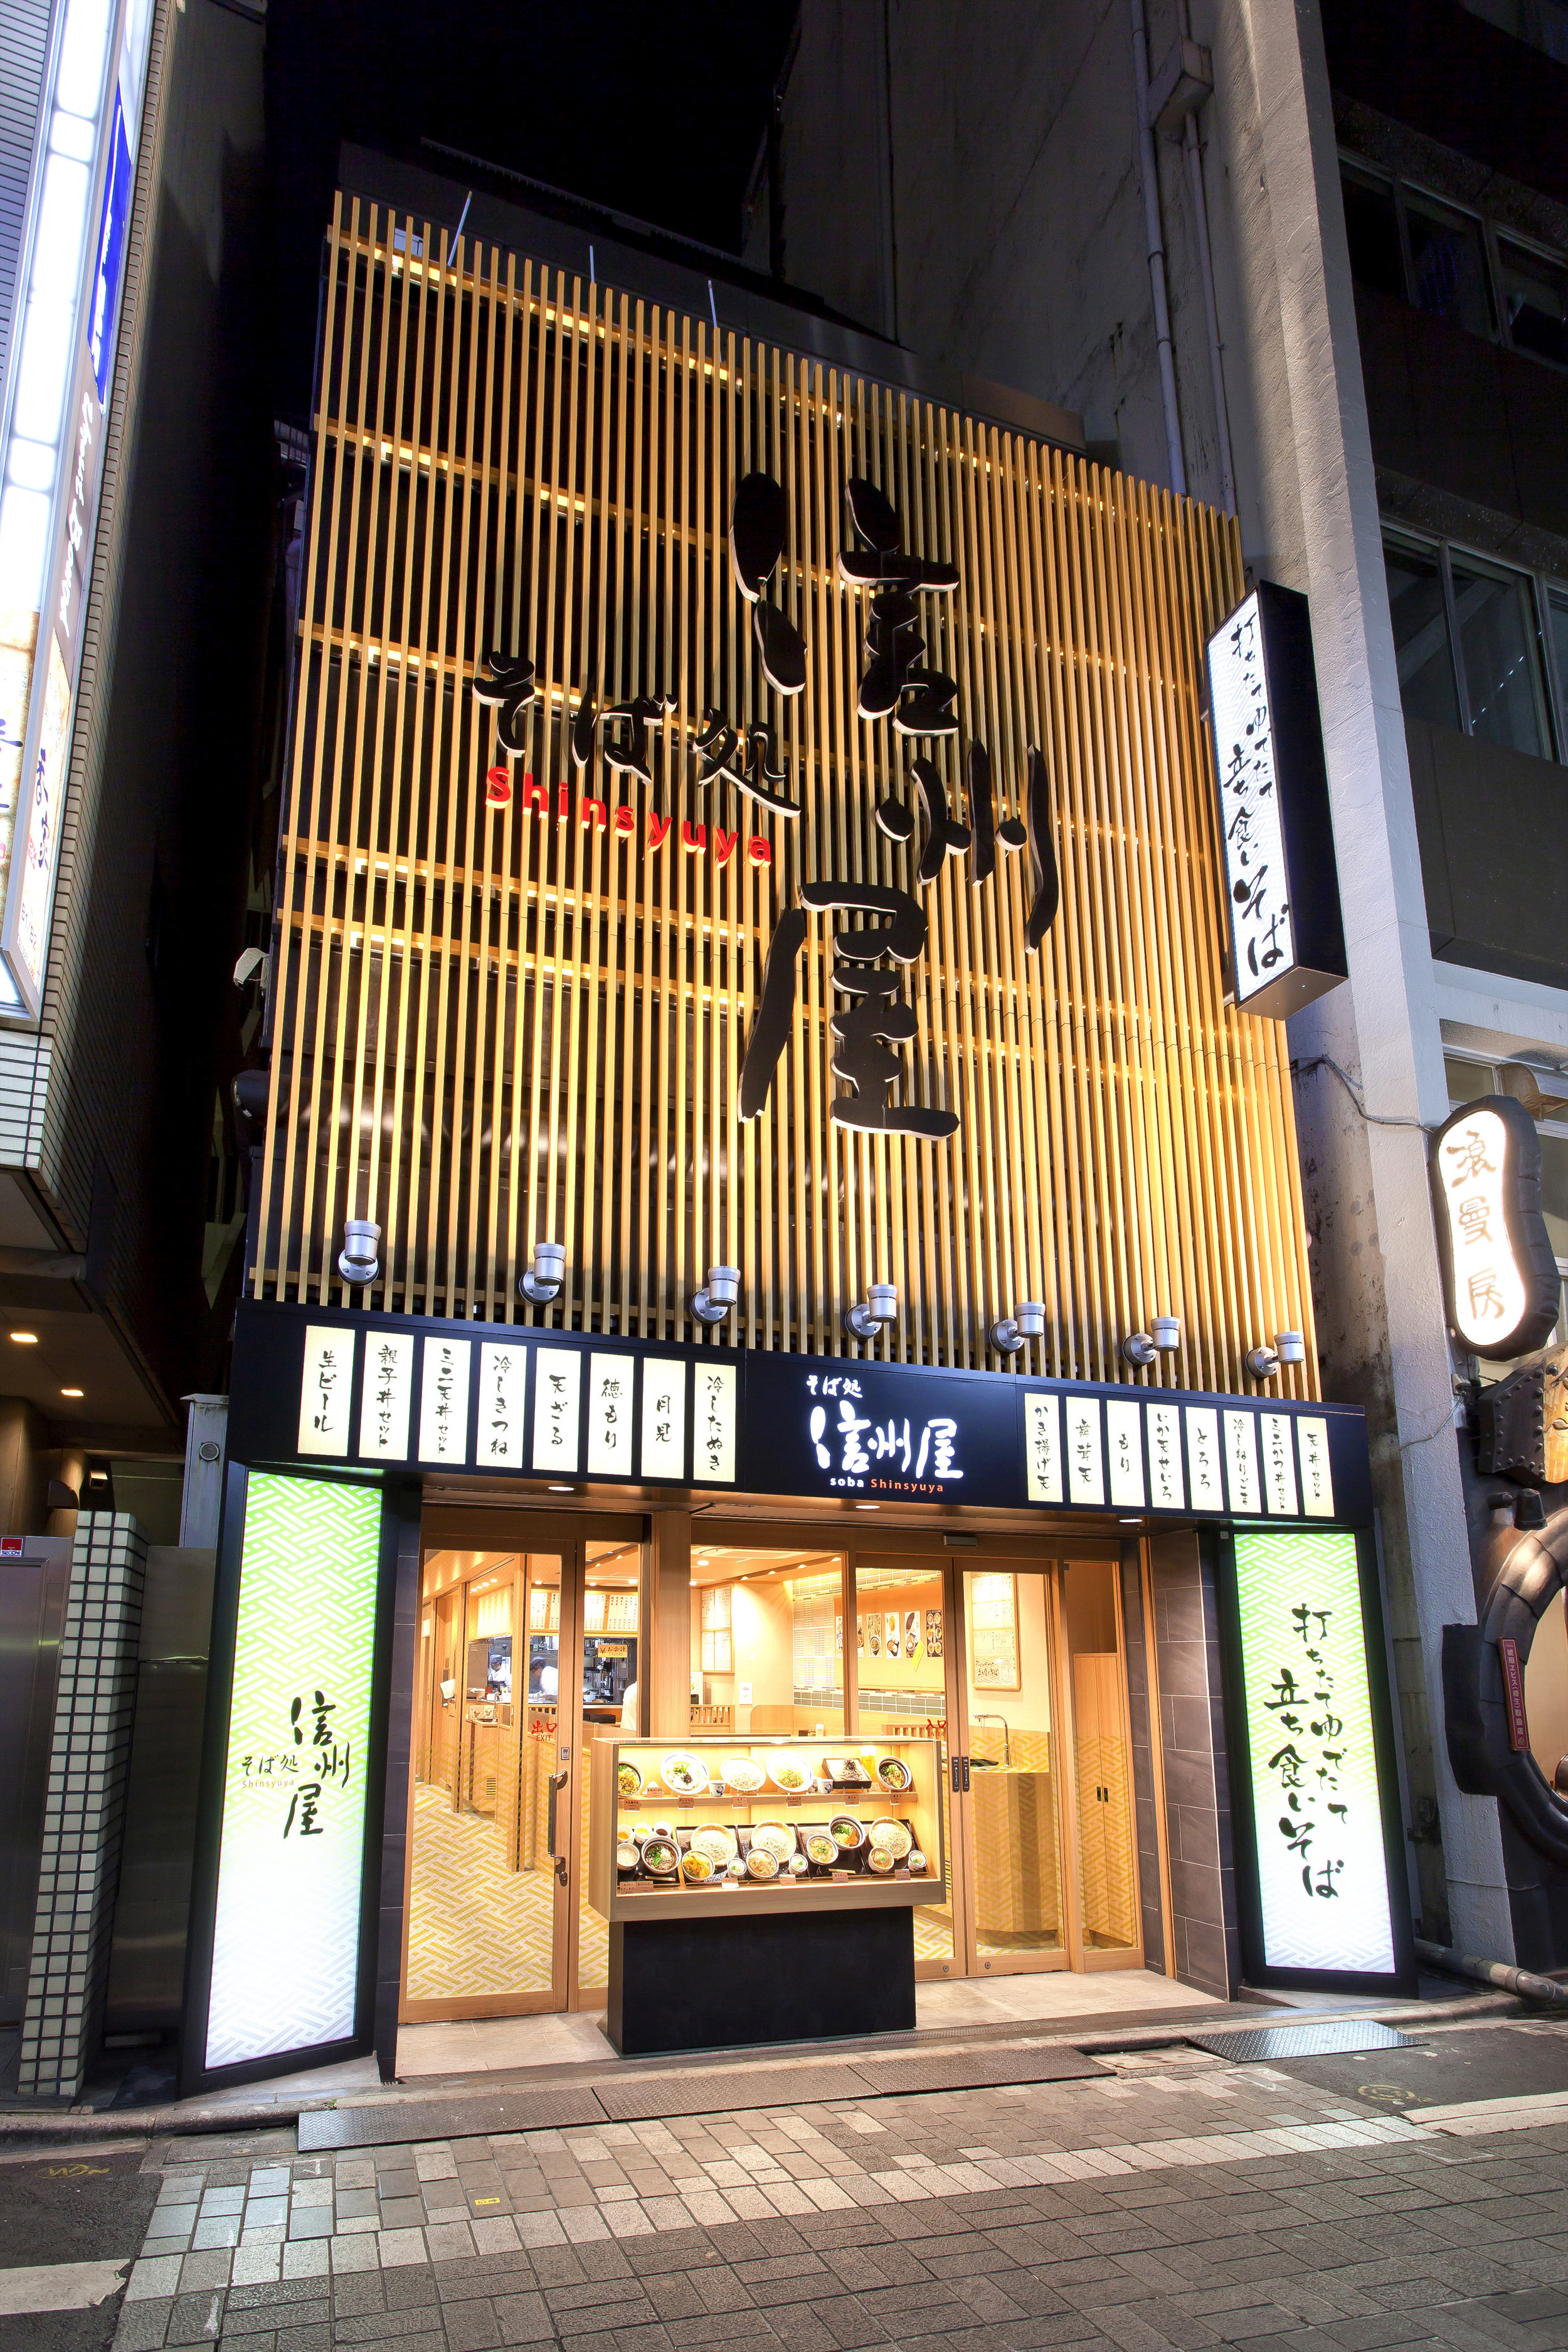 Restaurant - Japan Ever Art Wood® battens - Mizotsuki bolt fix cladding